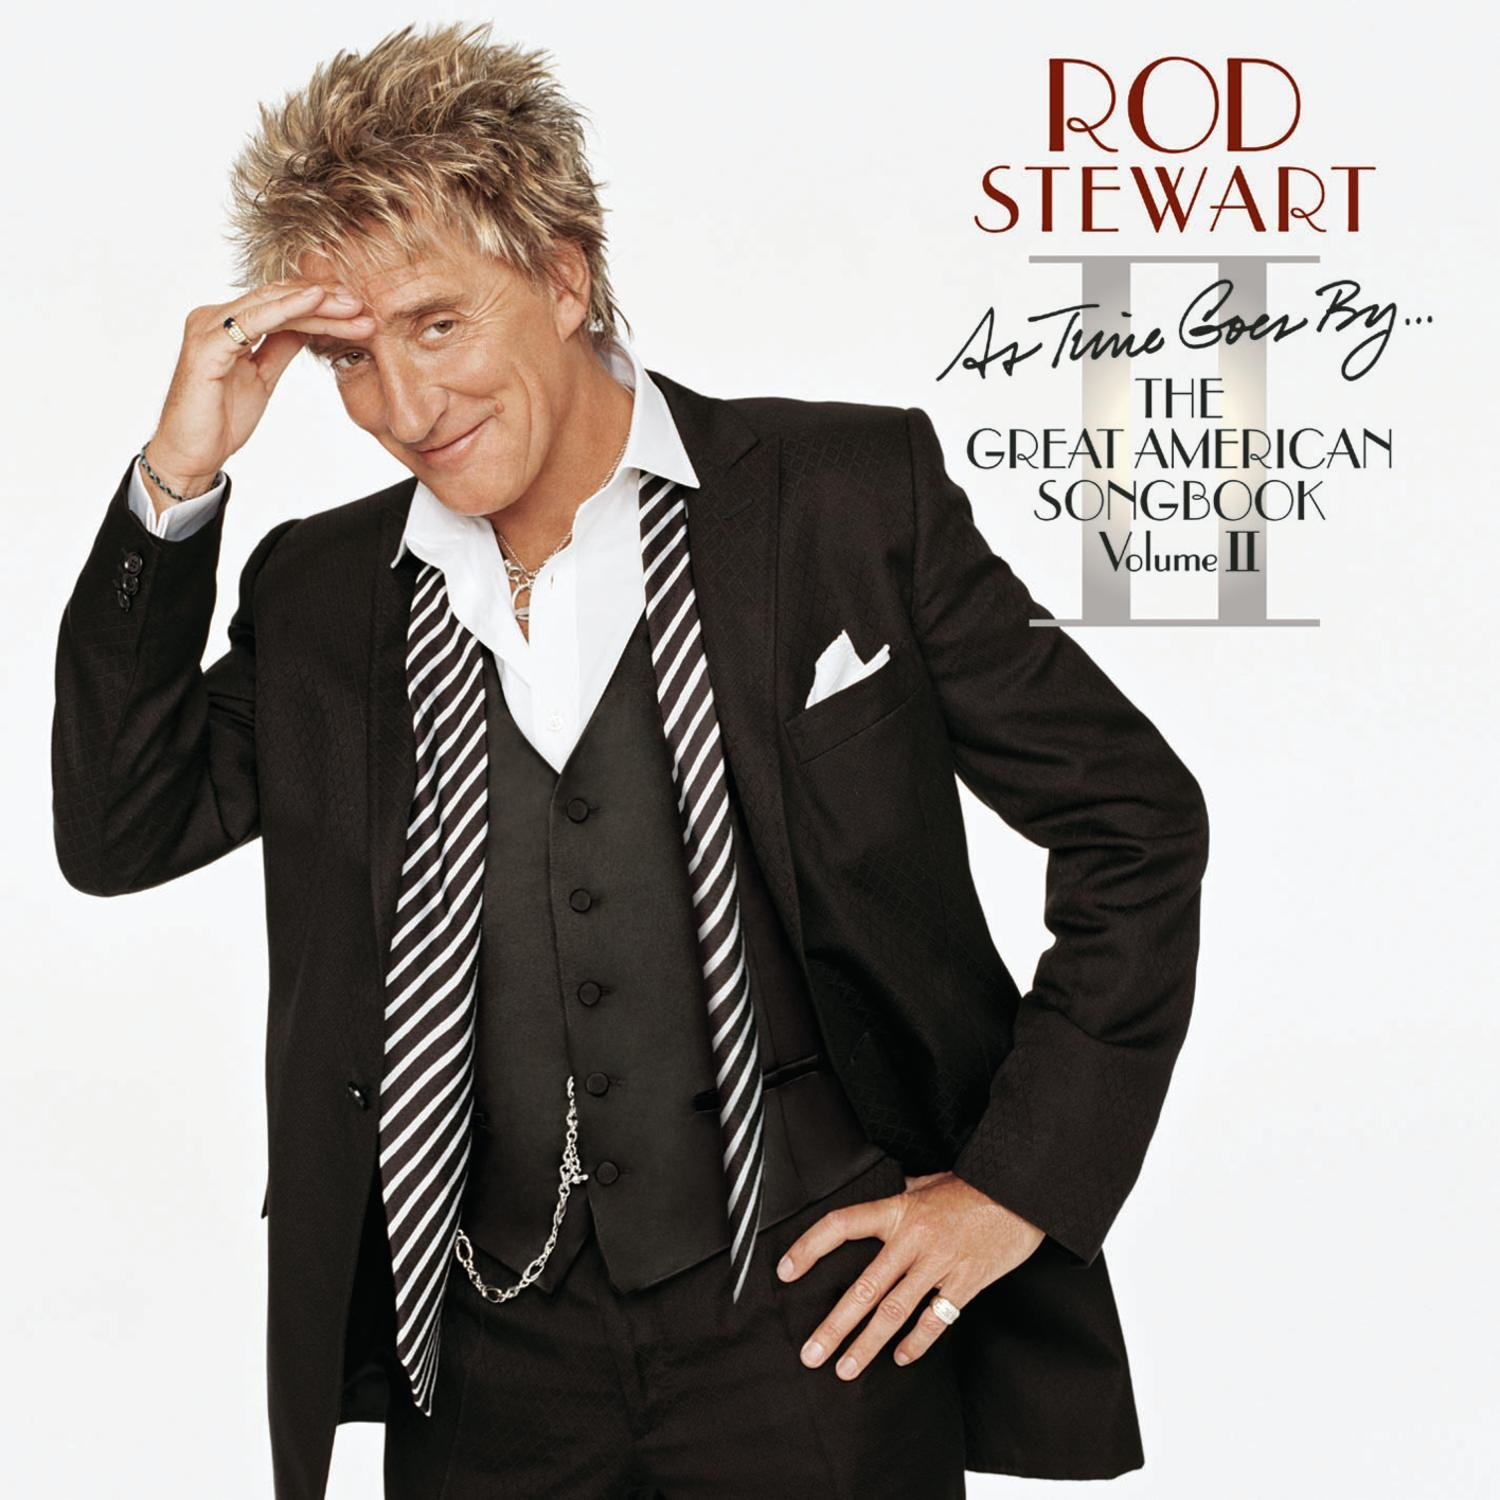 Stewart, Rod - As Time Goes By...The Great American Songbook: Volume II -  Amazon.com Music